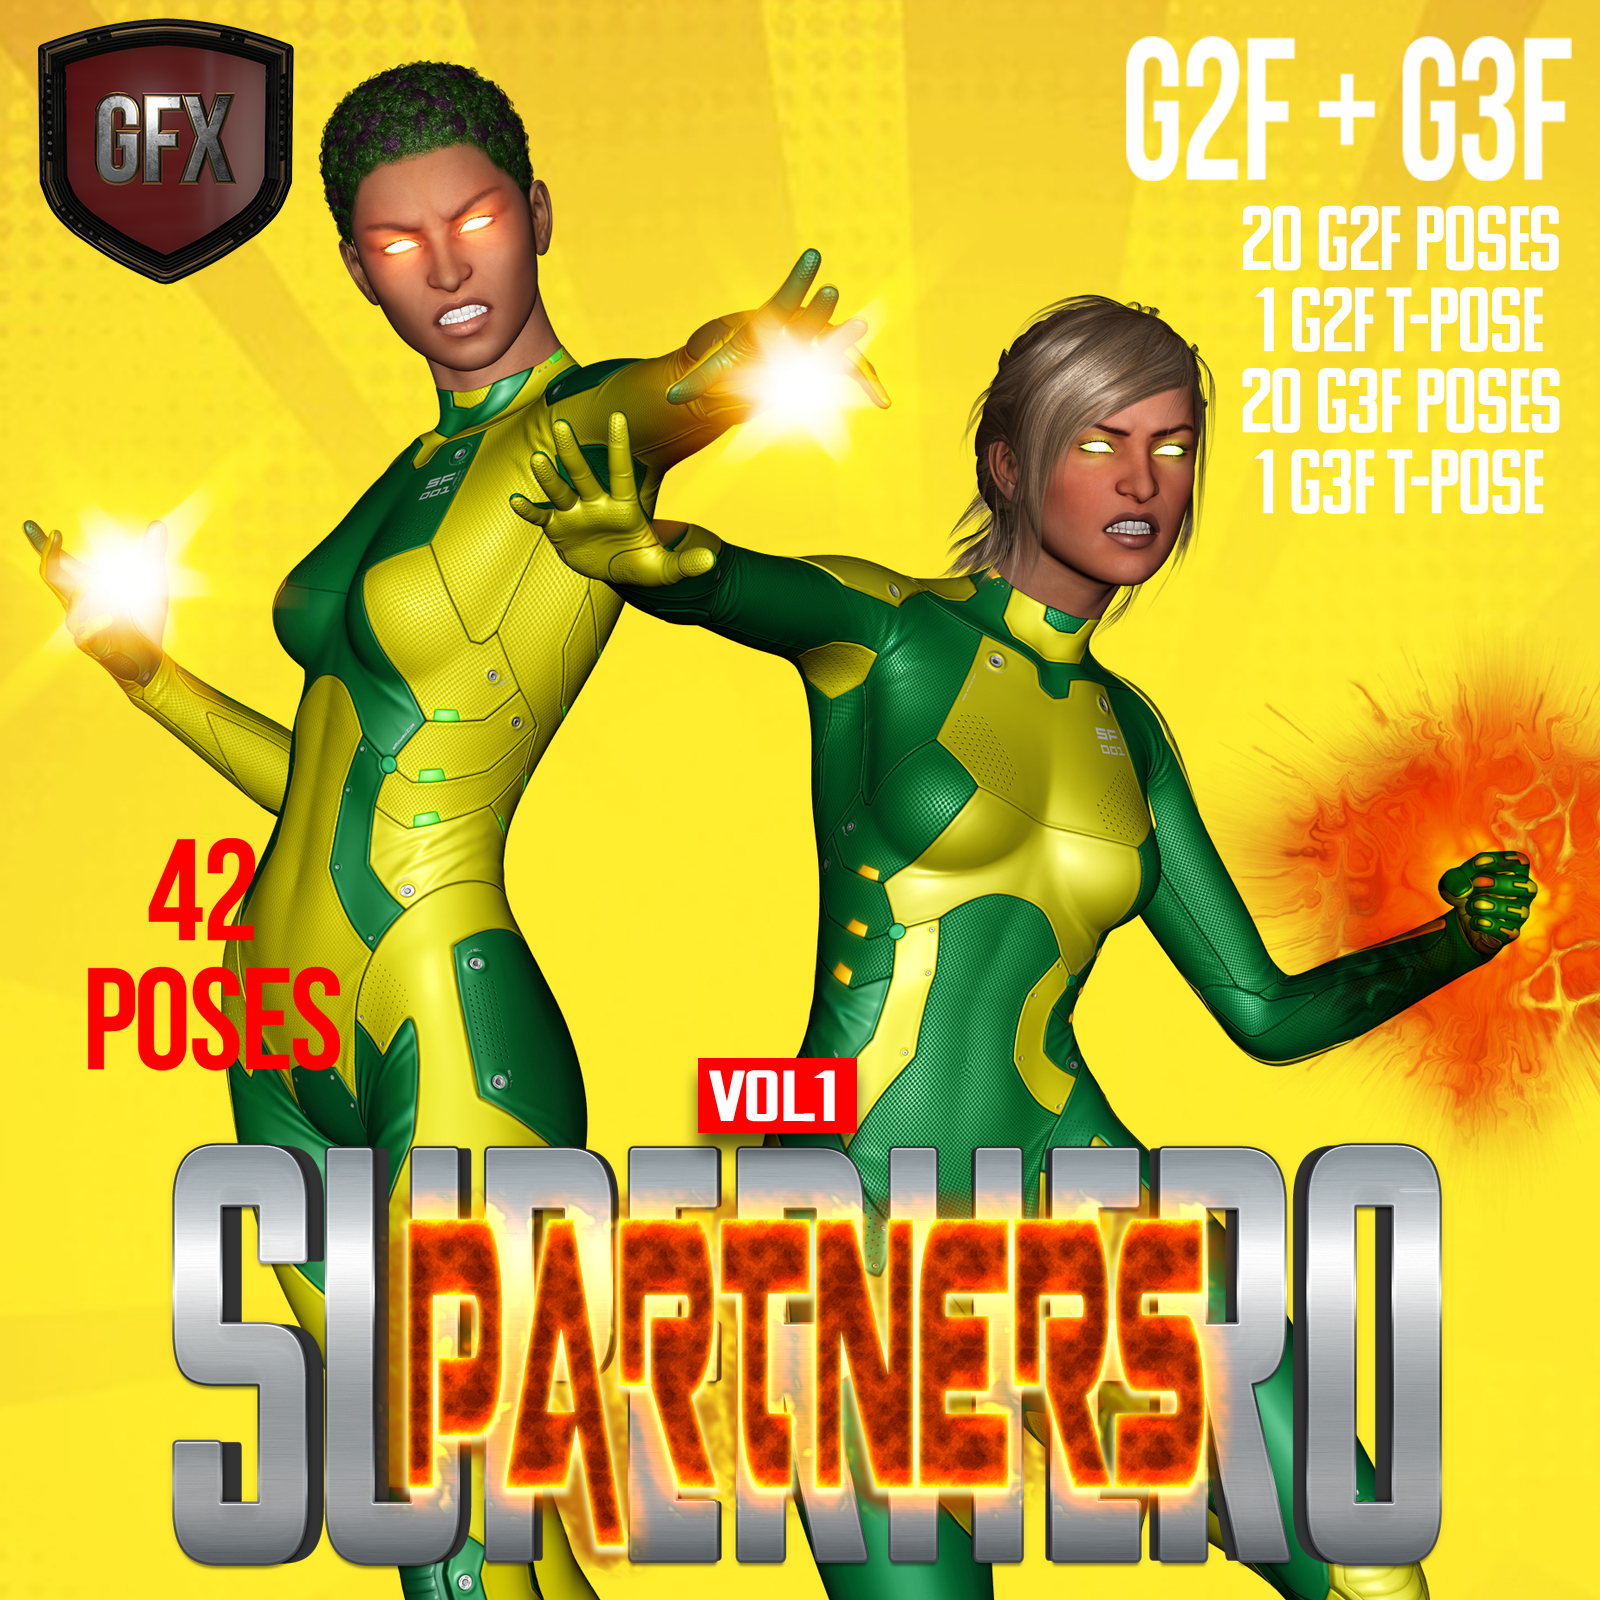 SuperHero Partners for G2F & G3F Volume 1 by GriffinFX